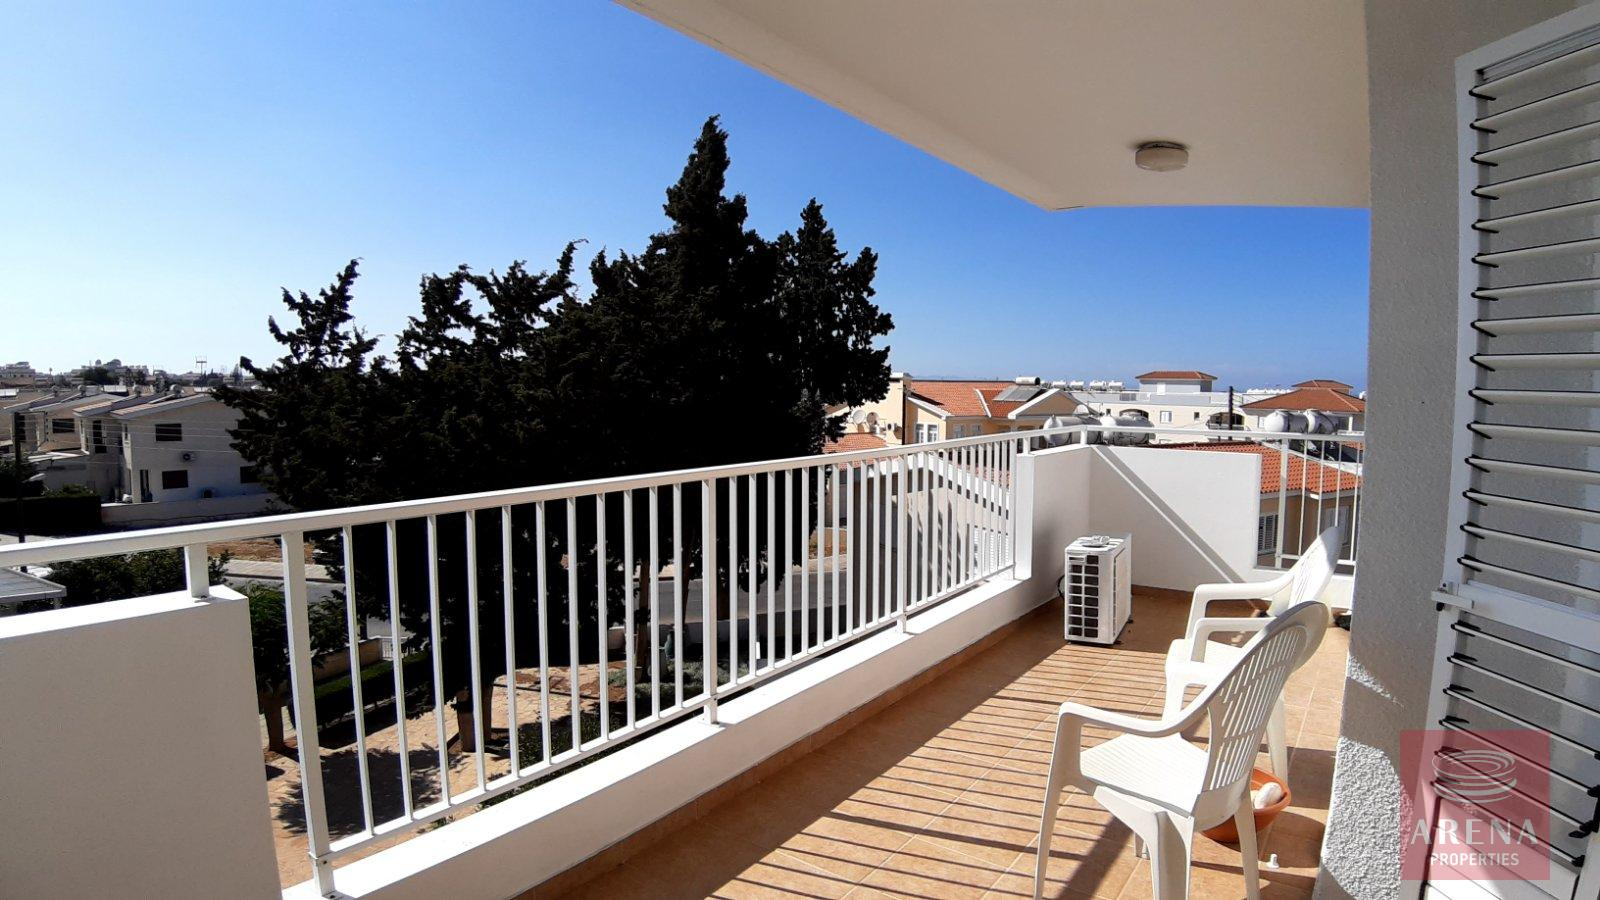 Apt for rent in Paralimni - balcony